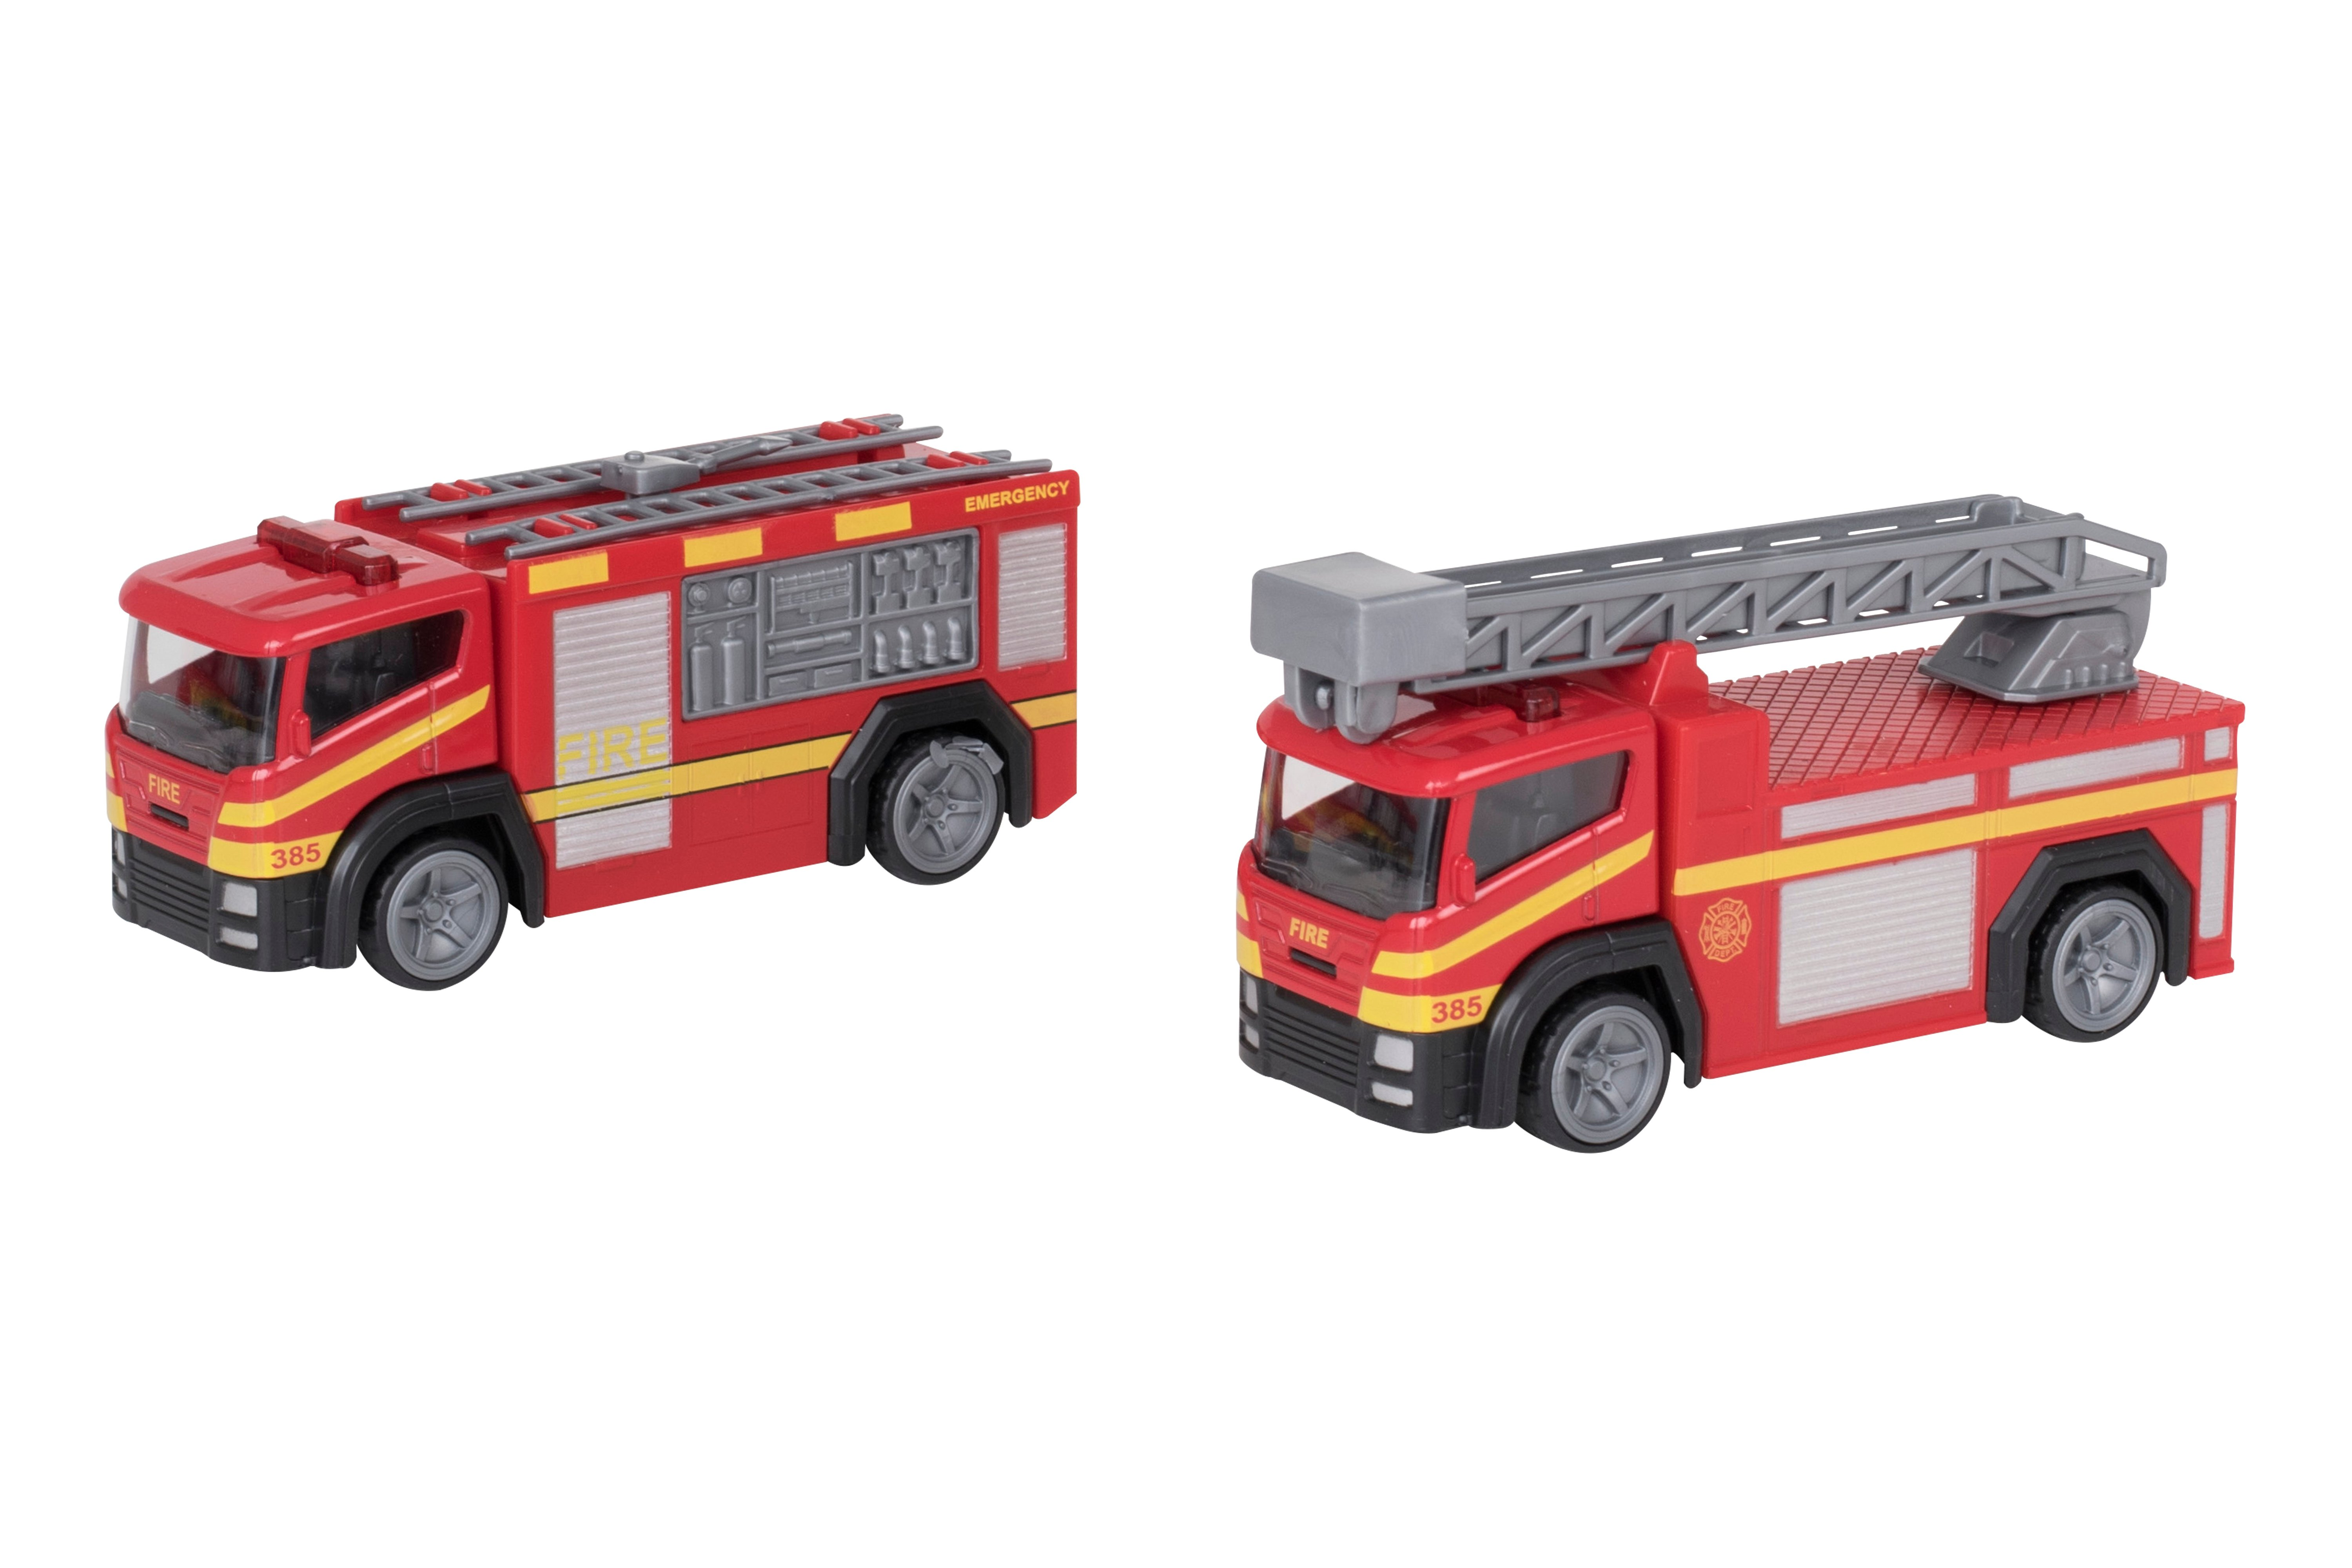 Teamsterz - Try Me Fire Engine (1373616)